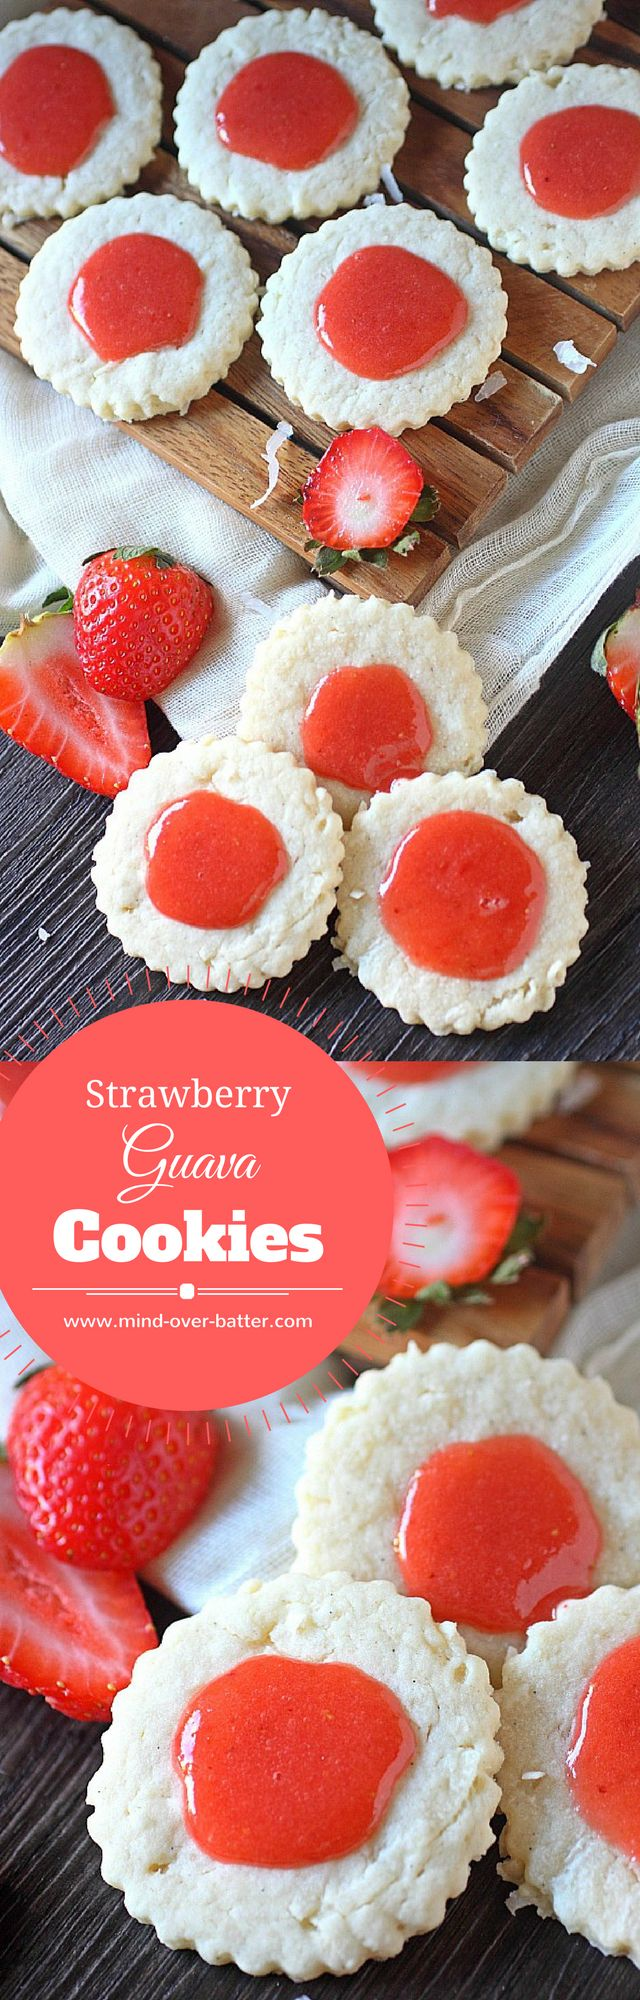 Strawberry Guava Cookies -- www.mind-over-batter.c…